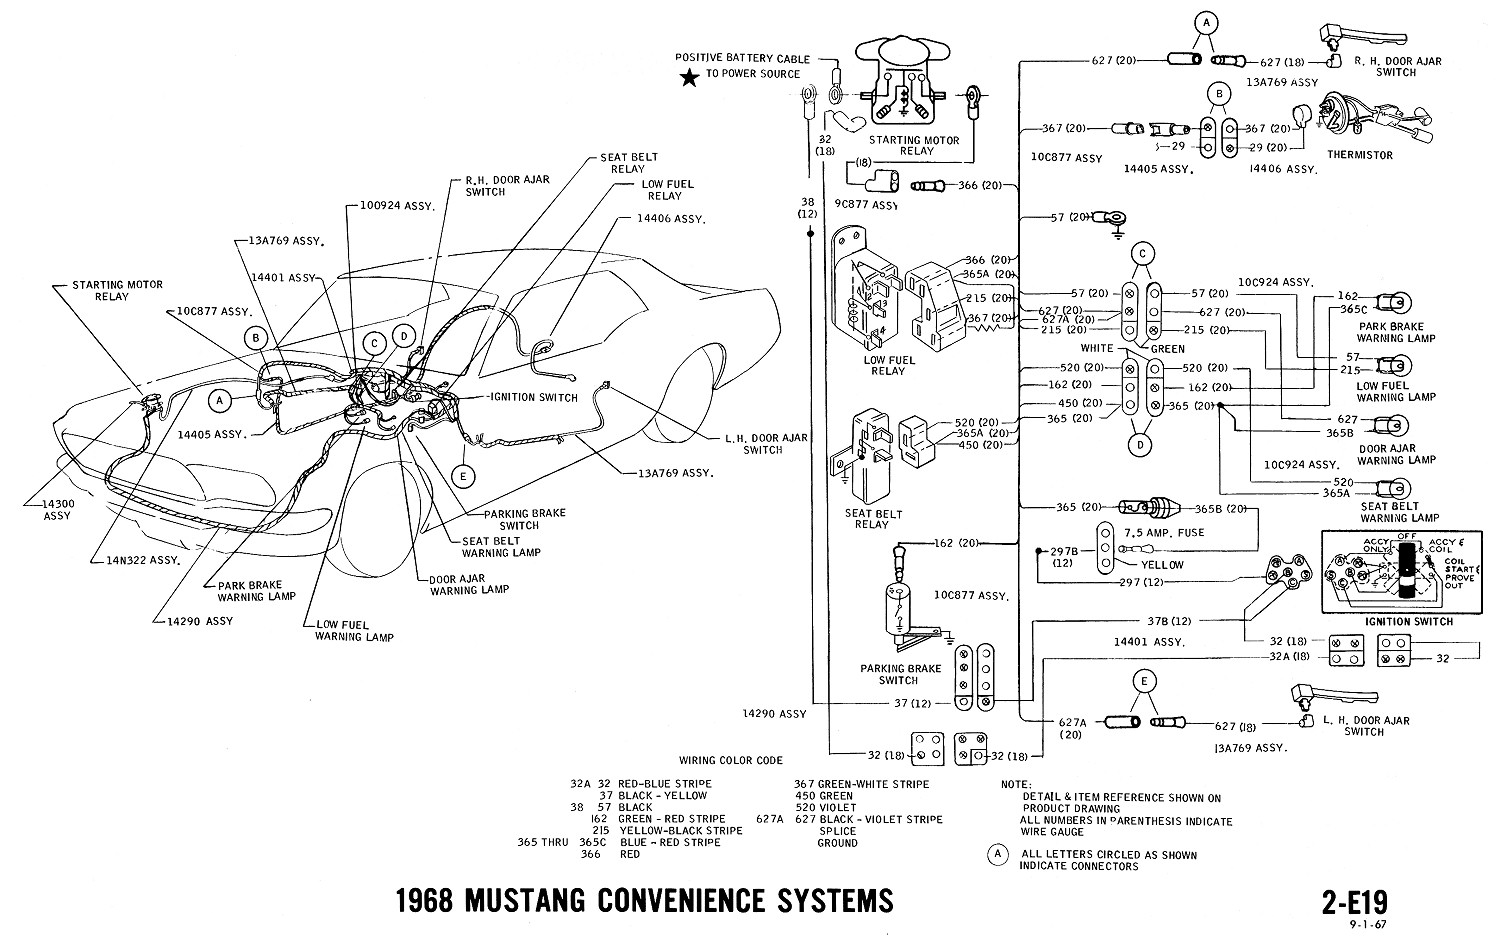 1969 Lincoln Wiring Diagram Manual Of Mark Iii 1968 Mustang Diagrams And Vacuum Schematics